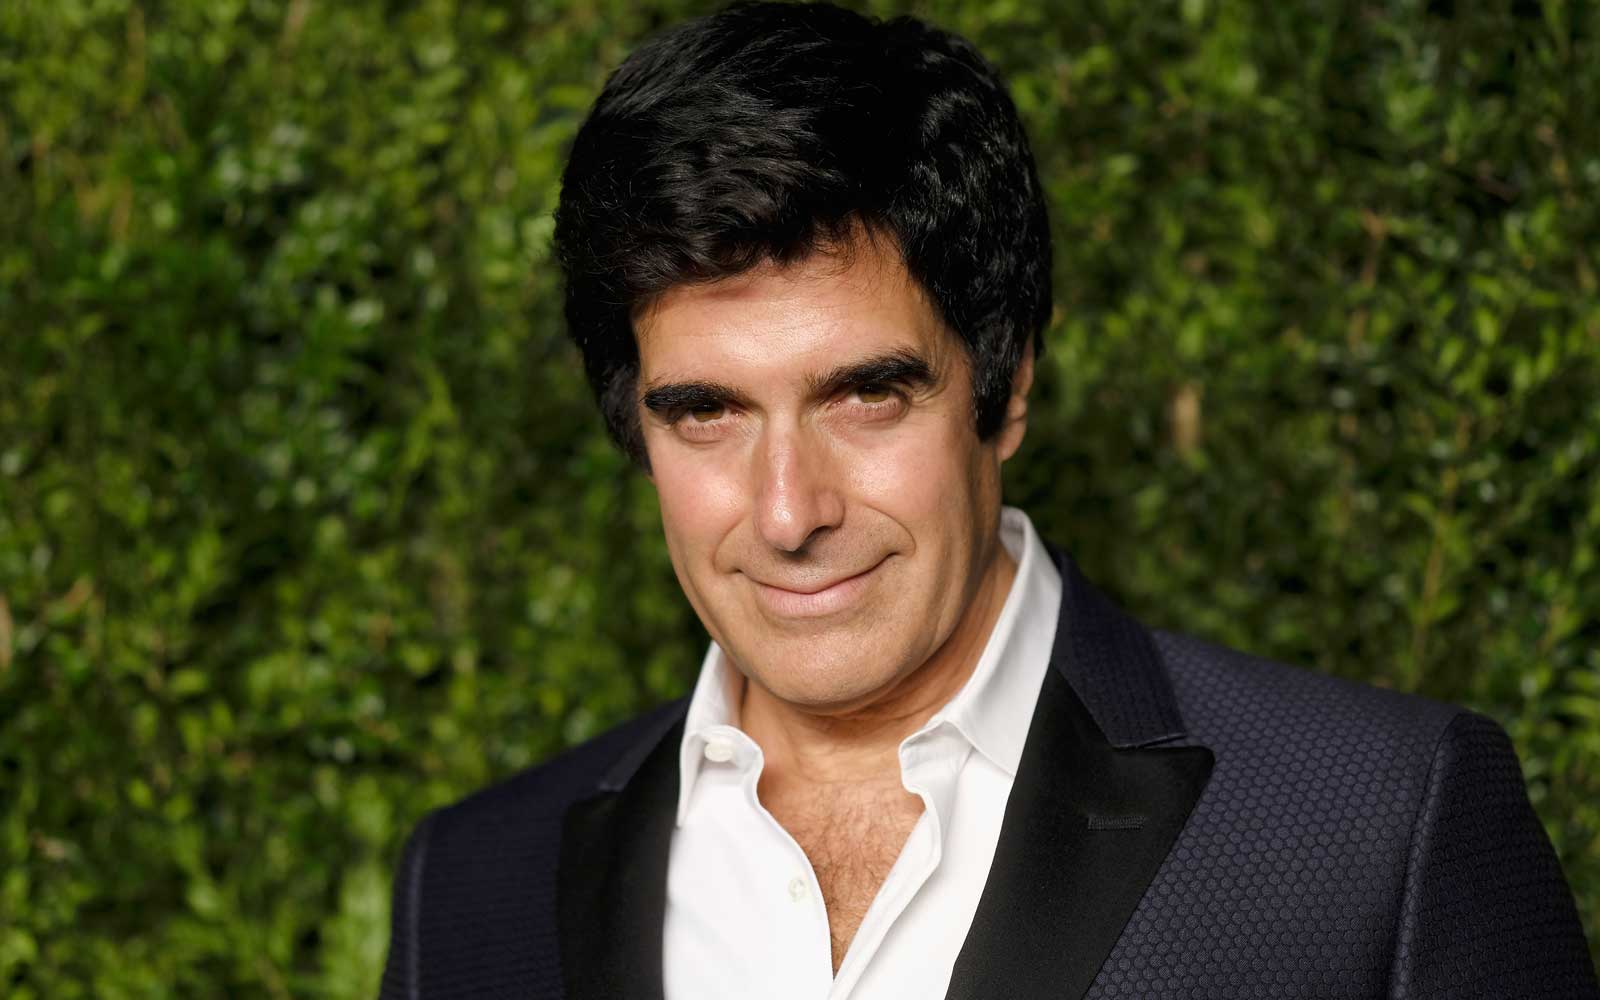 The Most Unusual Thing David Copperfield Has Ever Packed for a Trip